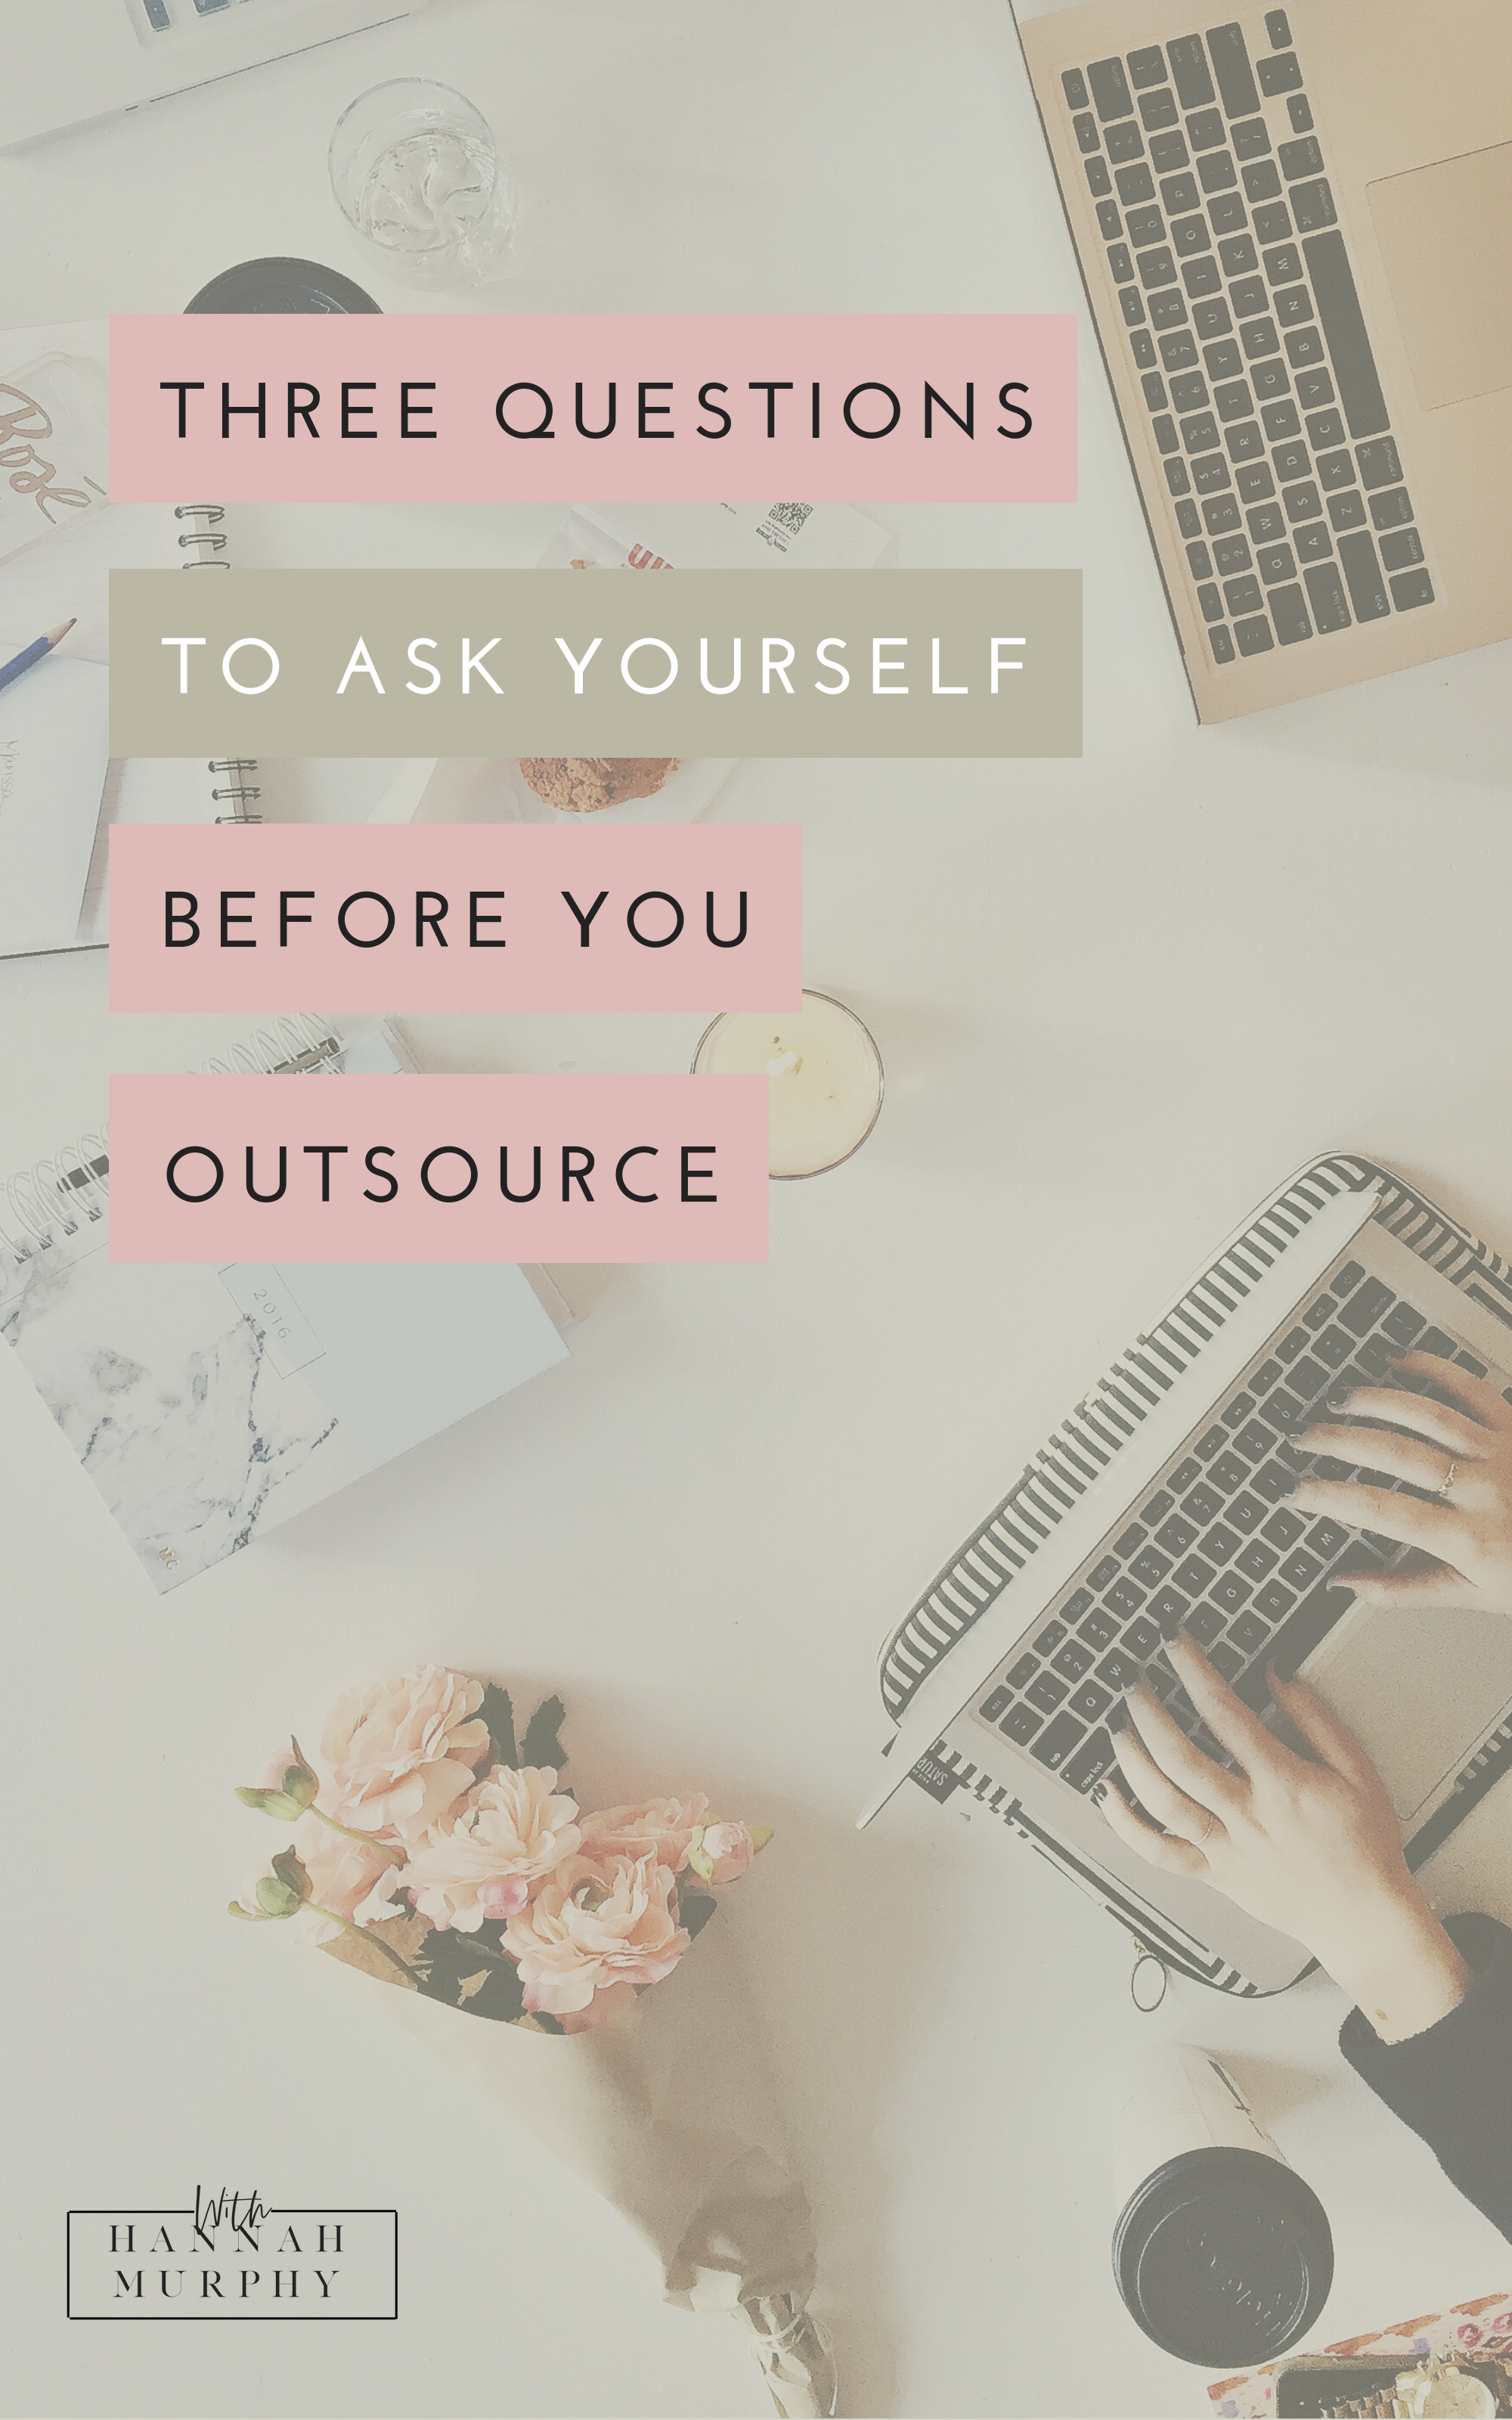 Considering to grow your team and outsource some tasks in your business. These 3 questions are what I ask myself every time I consider outsourcing a task and what I encourage my clients to think about also.